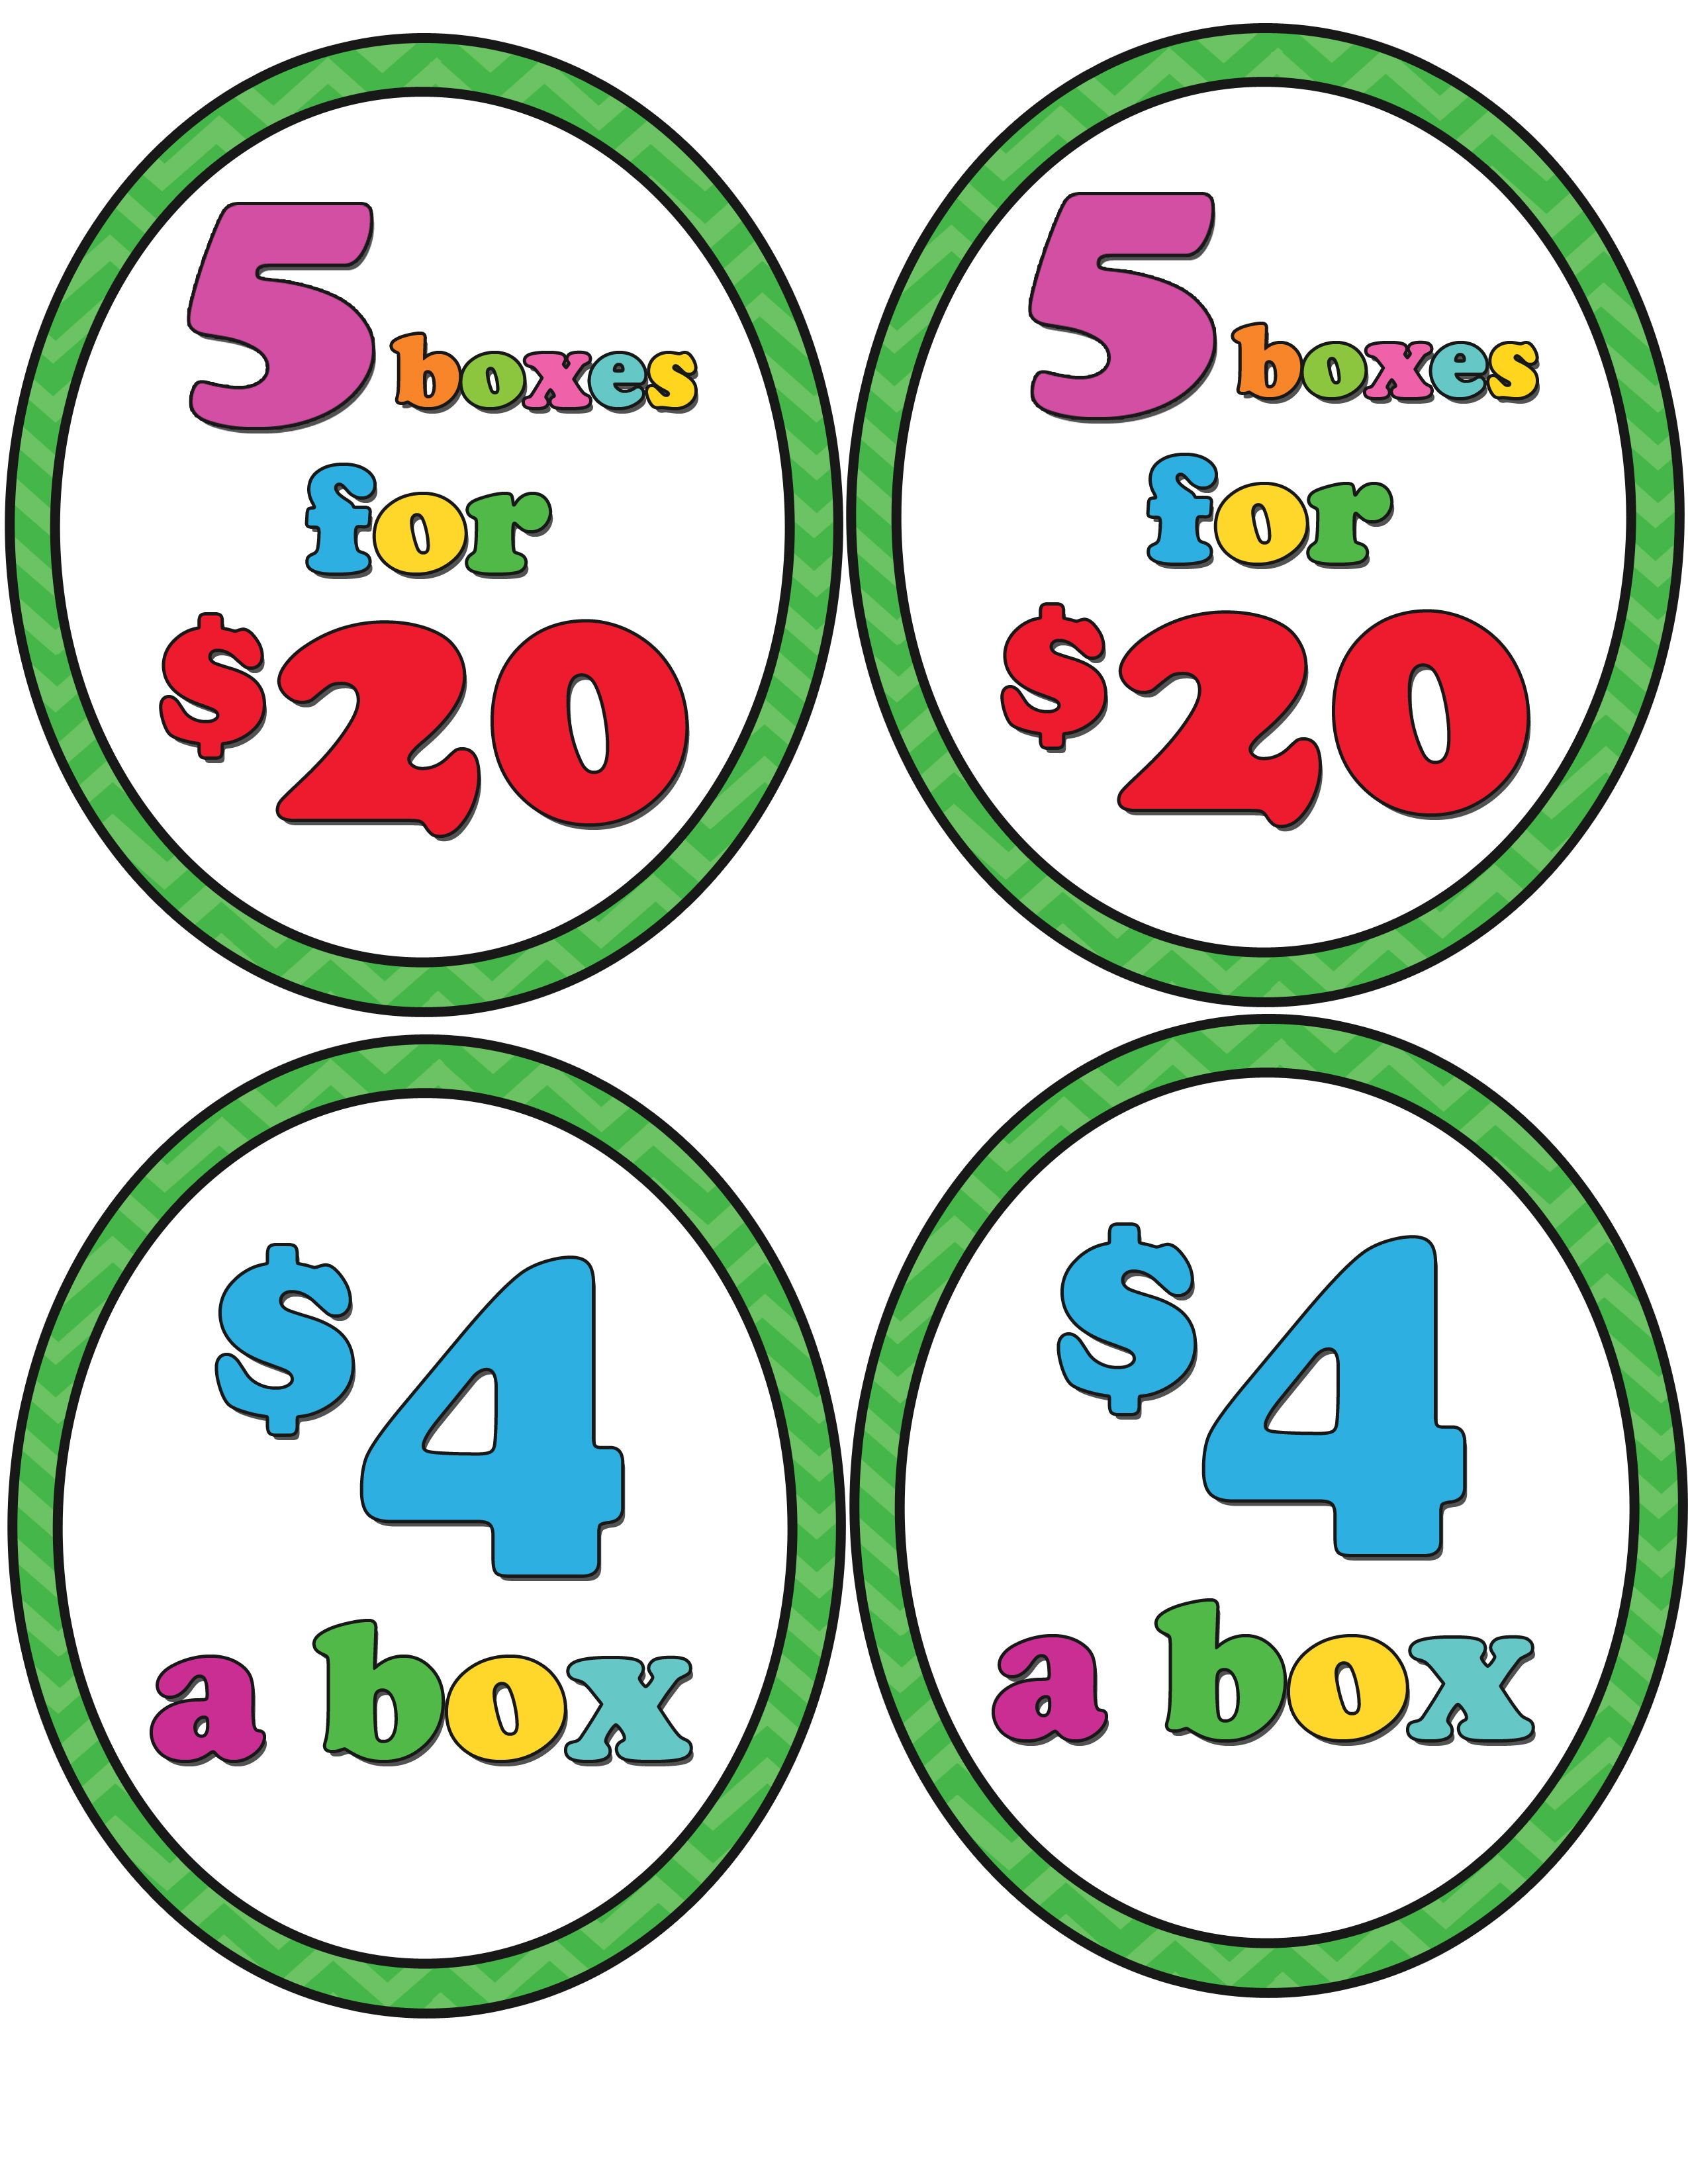 Girl Scout Cookie booth price printables. $4 a box, 5 boxes.